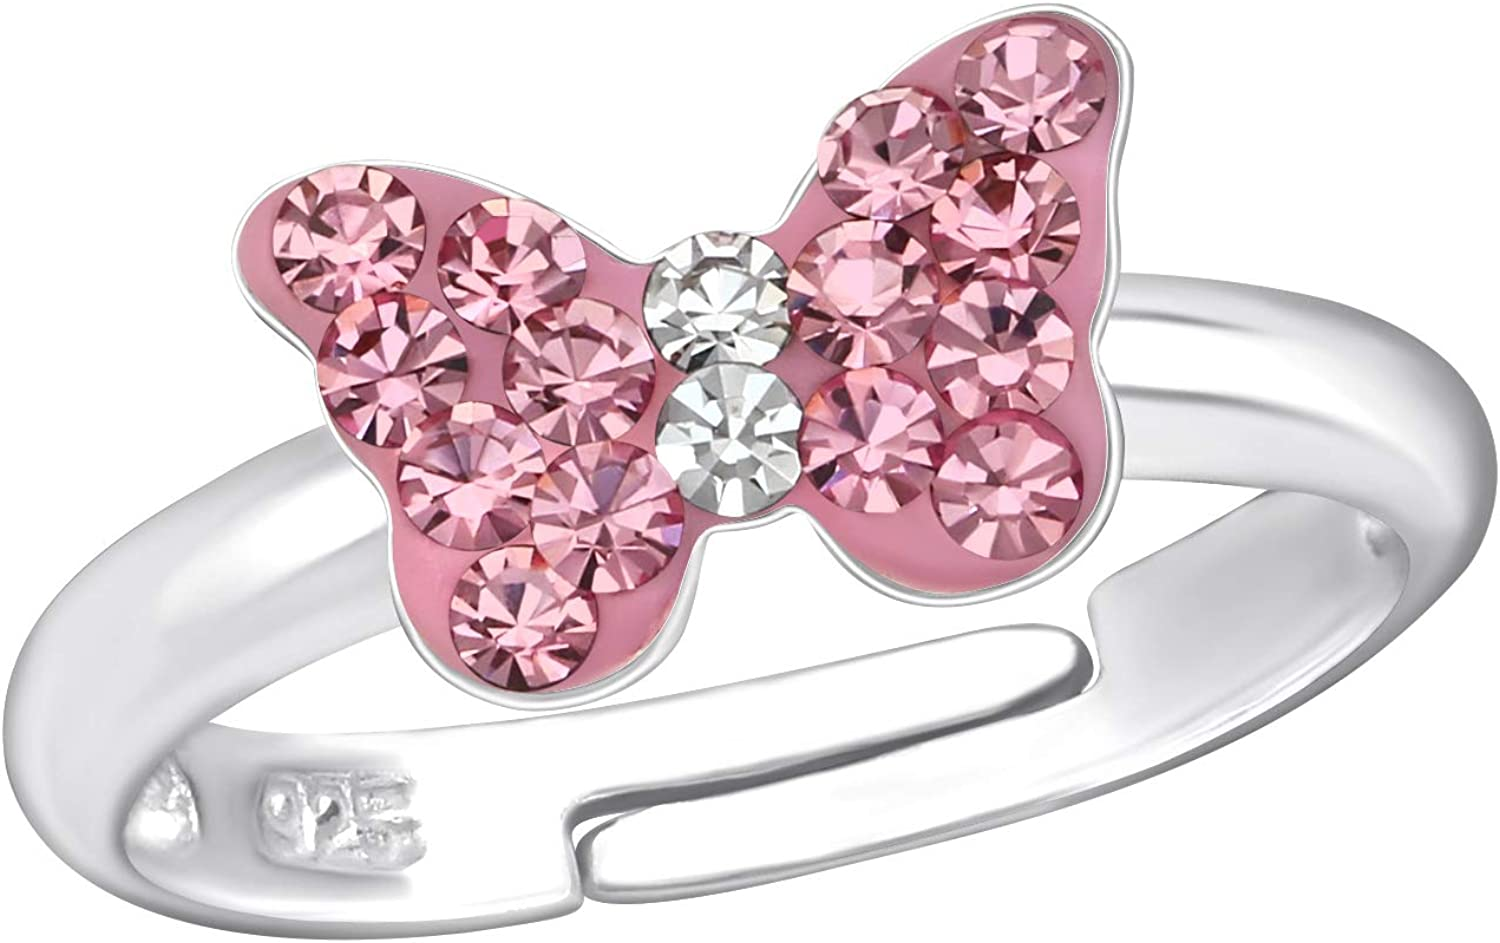 Aube Jewelry Hypoallergenic 925 Sterling Silver Pink Crystal Butterfly Ring Adjustable Size for Girls and Women